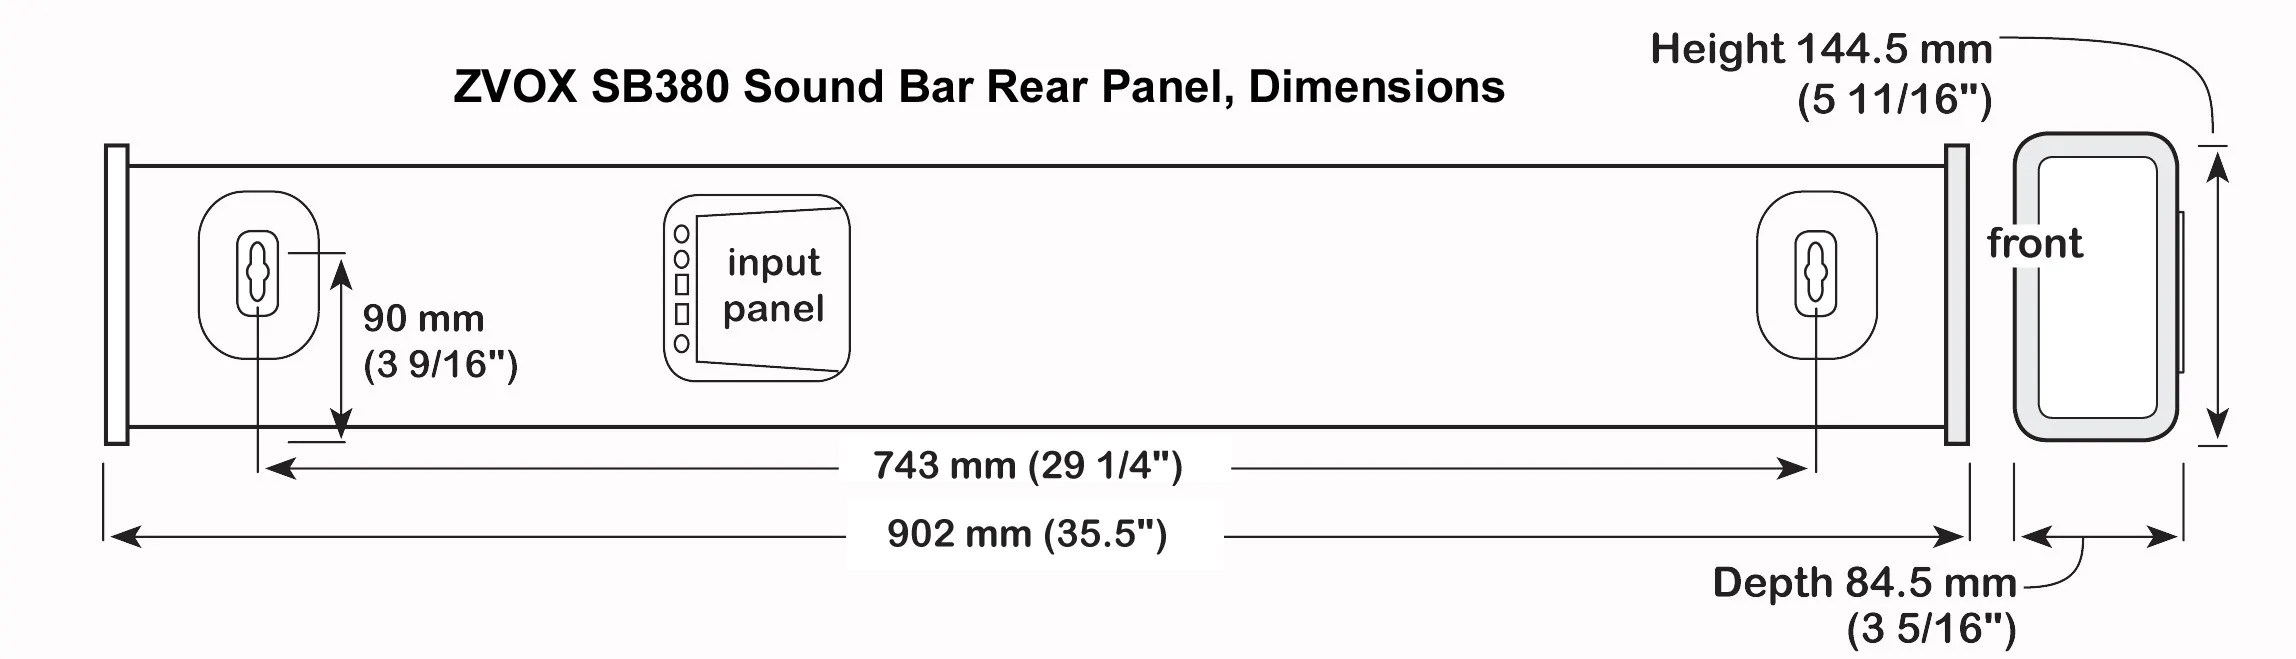 click here to download sb380 sound bar back panel illustration and dimensions [ 2296 x 659 Pixel ]